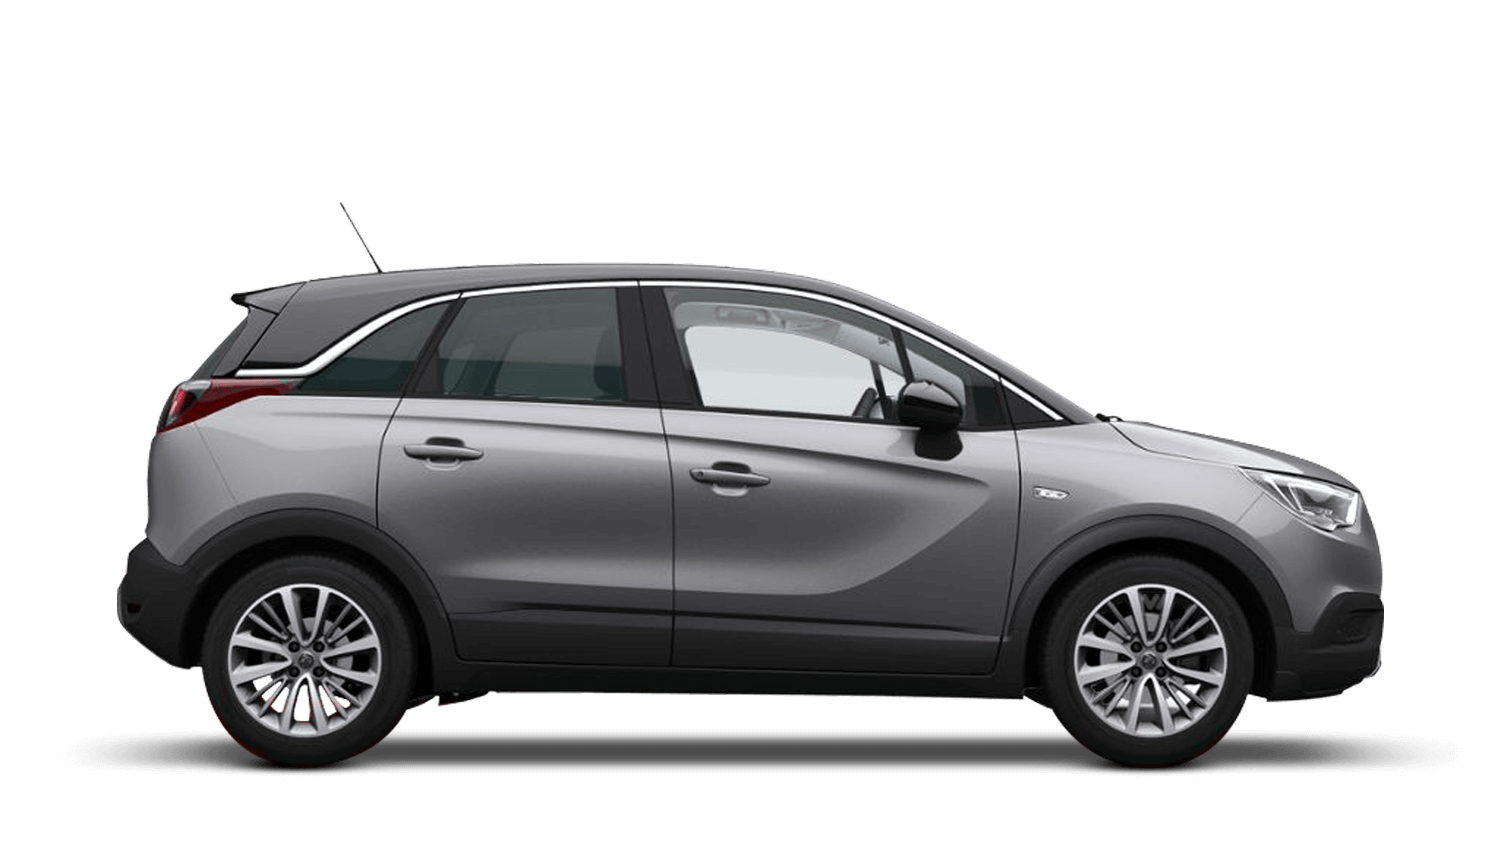 Quartz Grey (Metallic) Vauxhall Crossland X